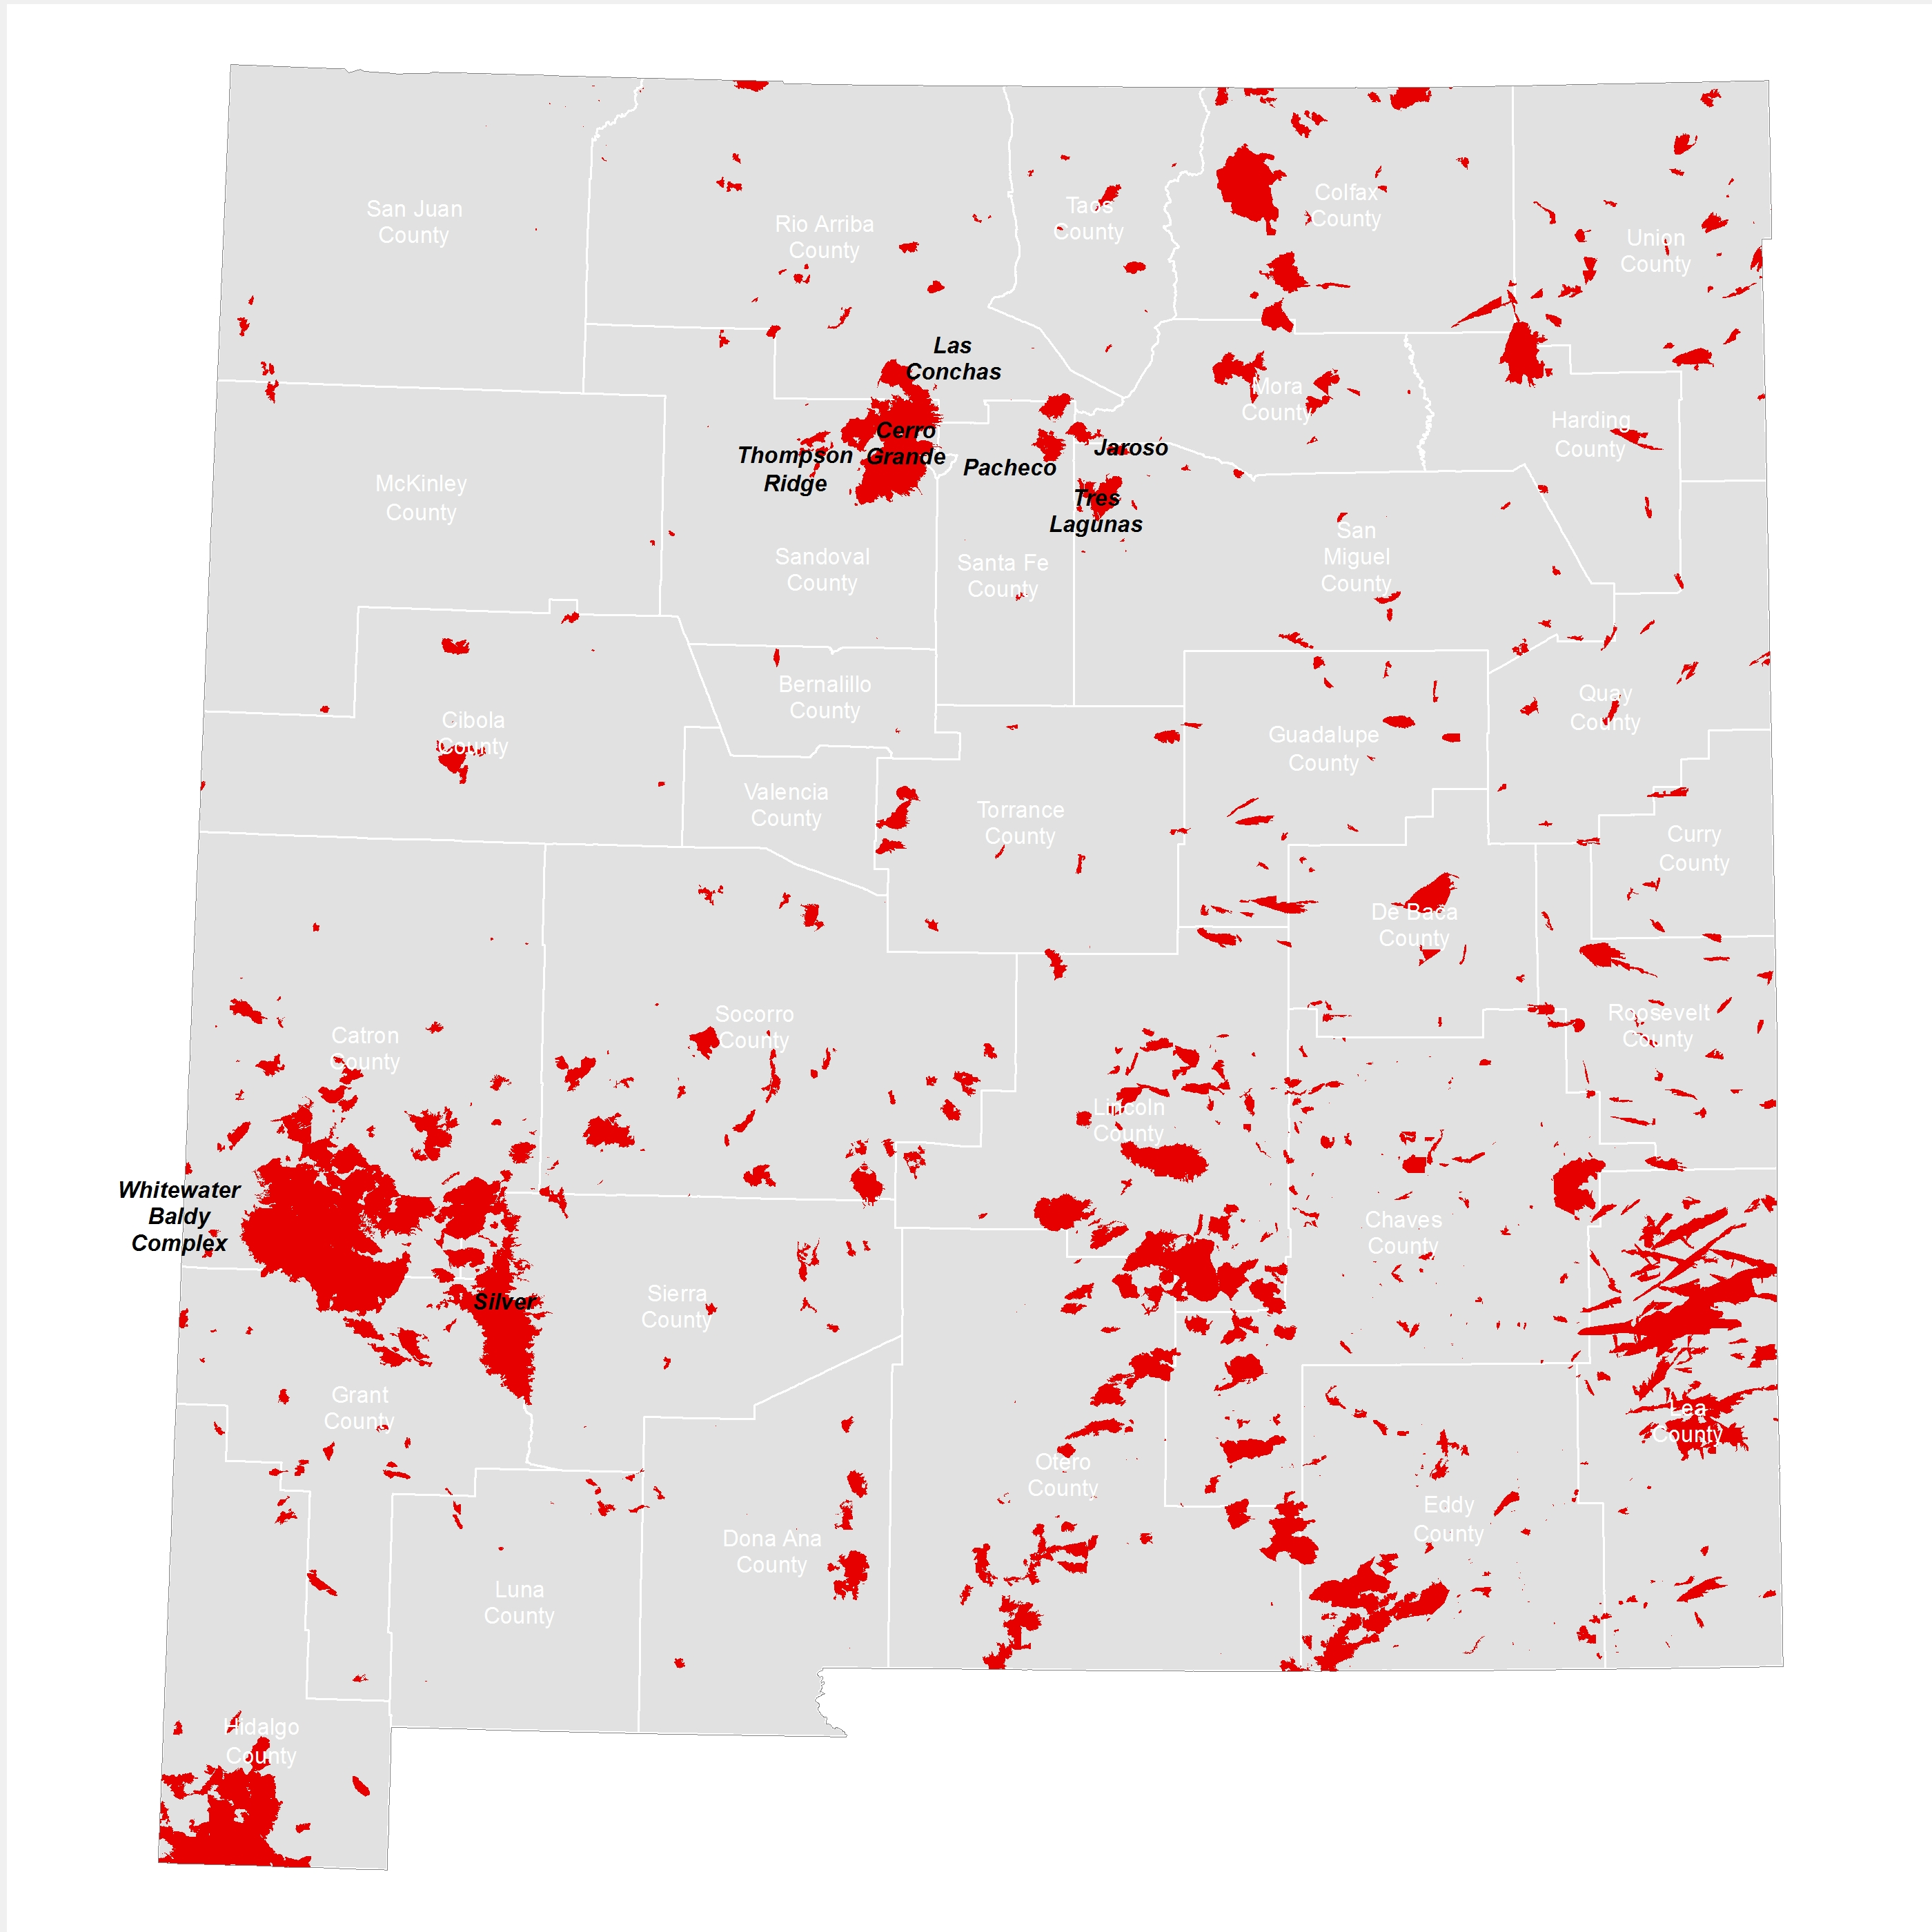 Fires In New Mexico Map How is Wildfire Affecting New Mexico?   NM RGIS